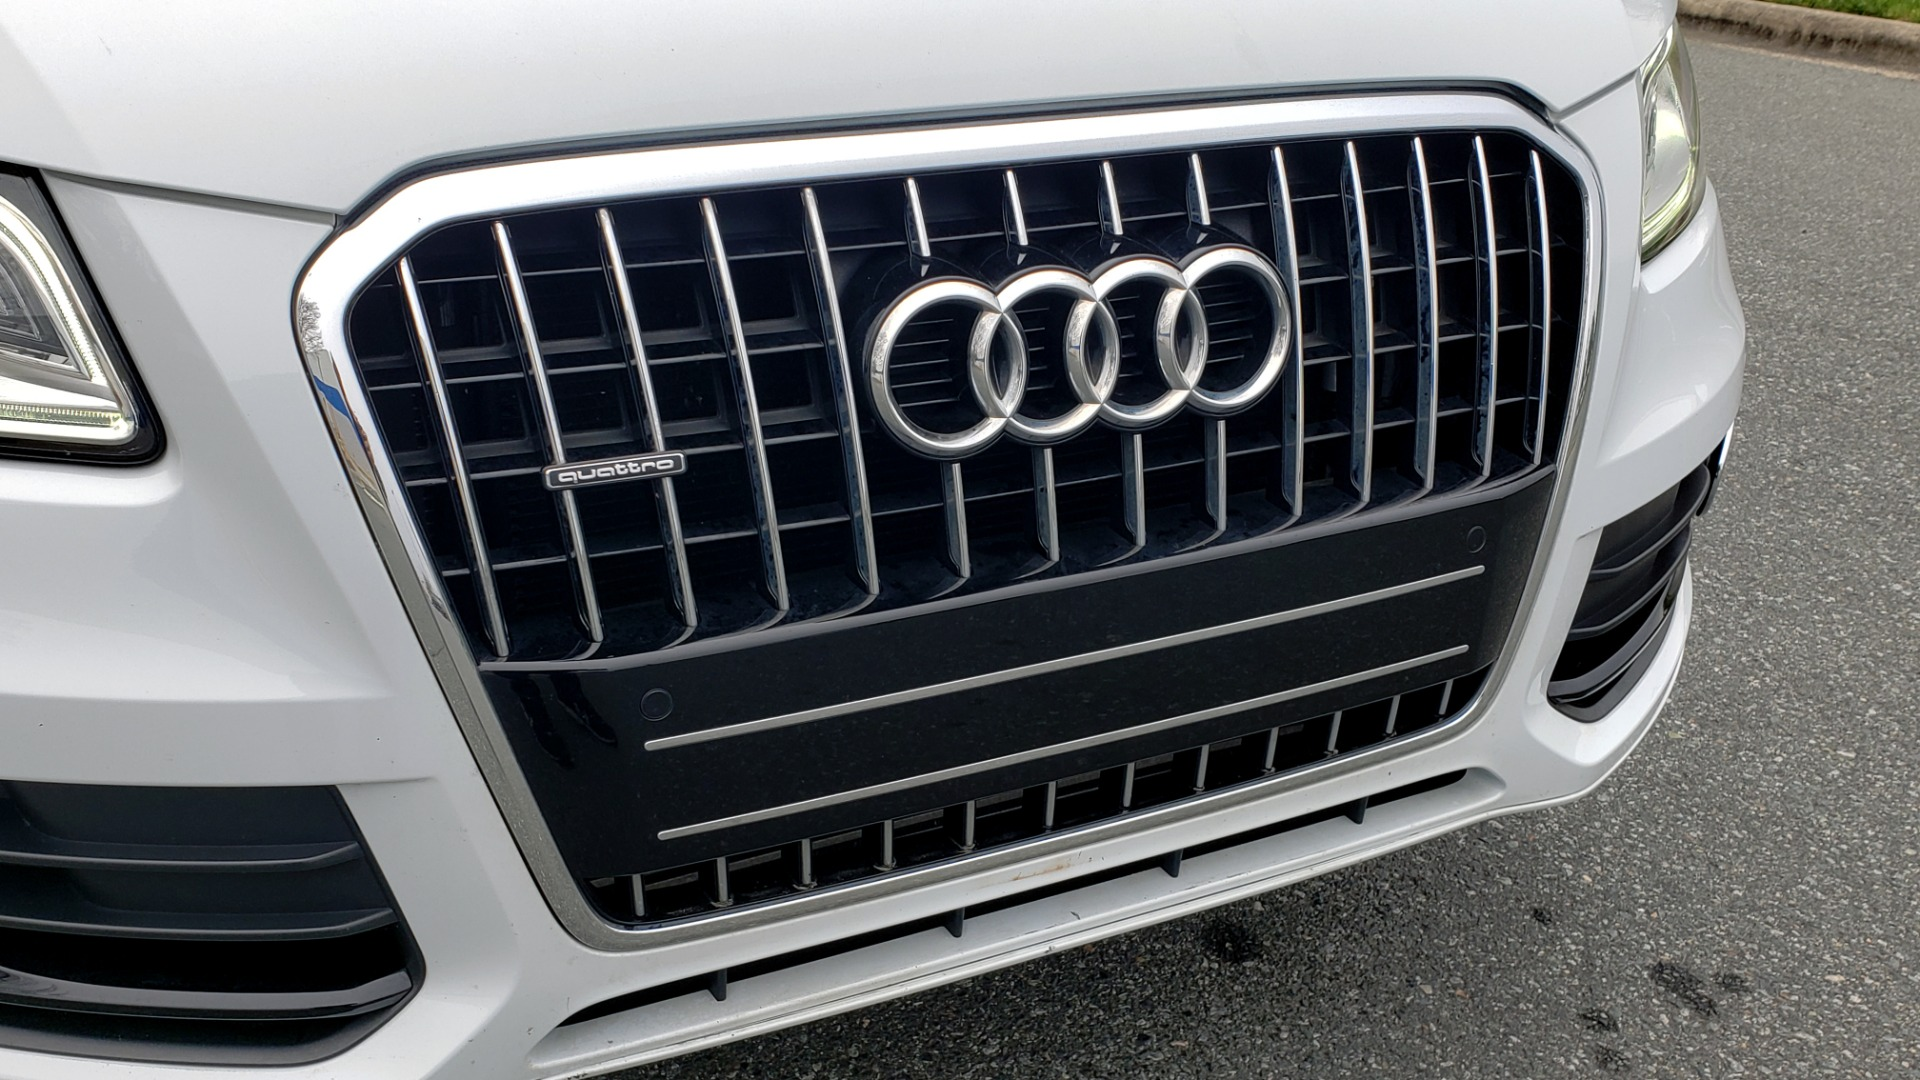 Used 2017 Audi Q5 PREMIUM PLUS / TECH / NAV / PANO-ROOF / B&O SND / REARVIEW for sale Sold at Formula Imports in Charlotte NC 28227 27